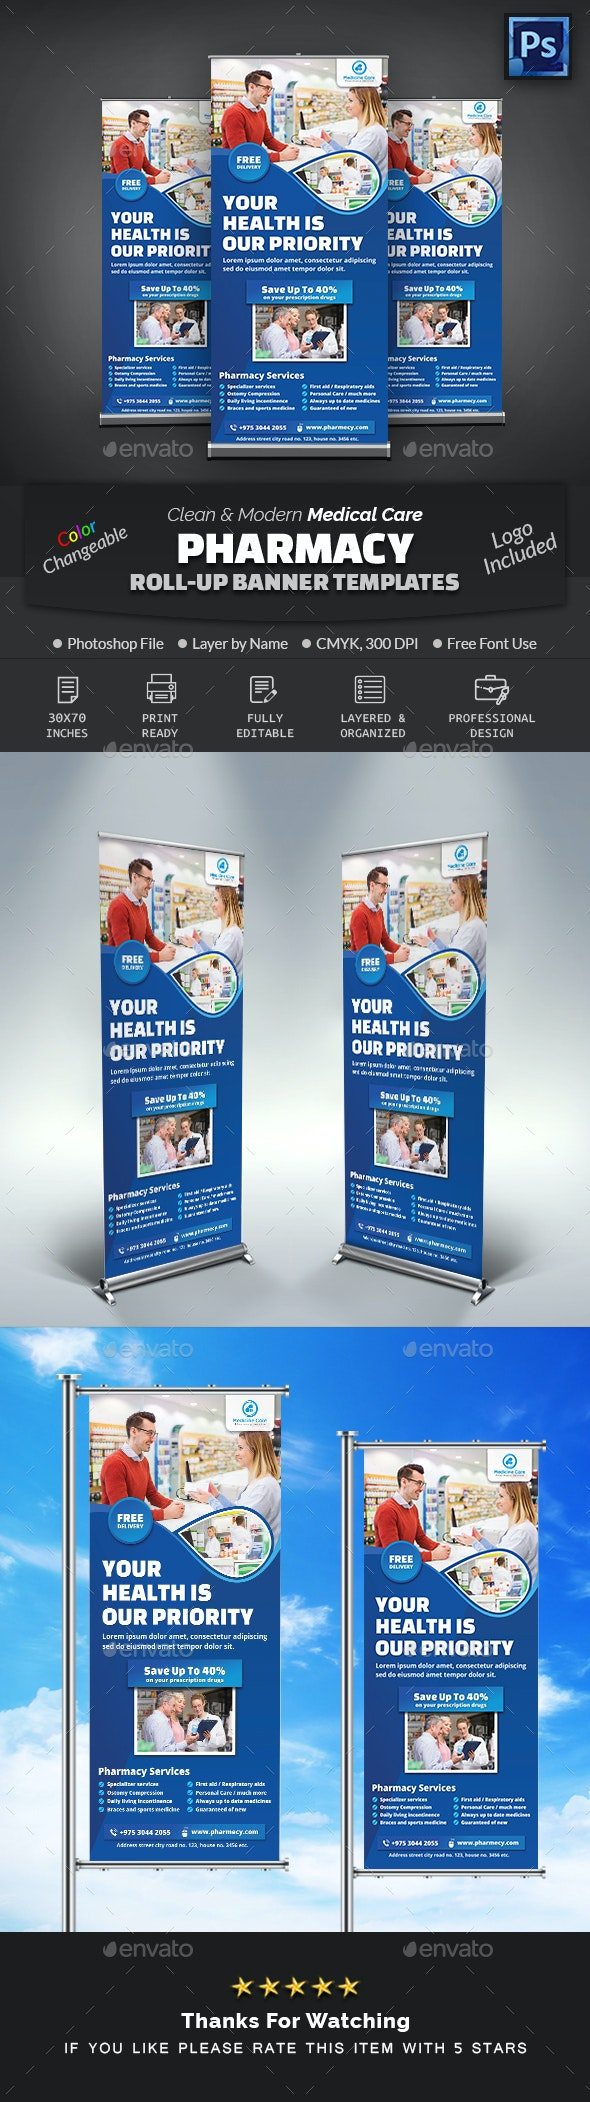 Pharmacy Medical Care Roll-Up Banner - Signage Print Templates